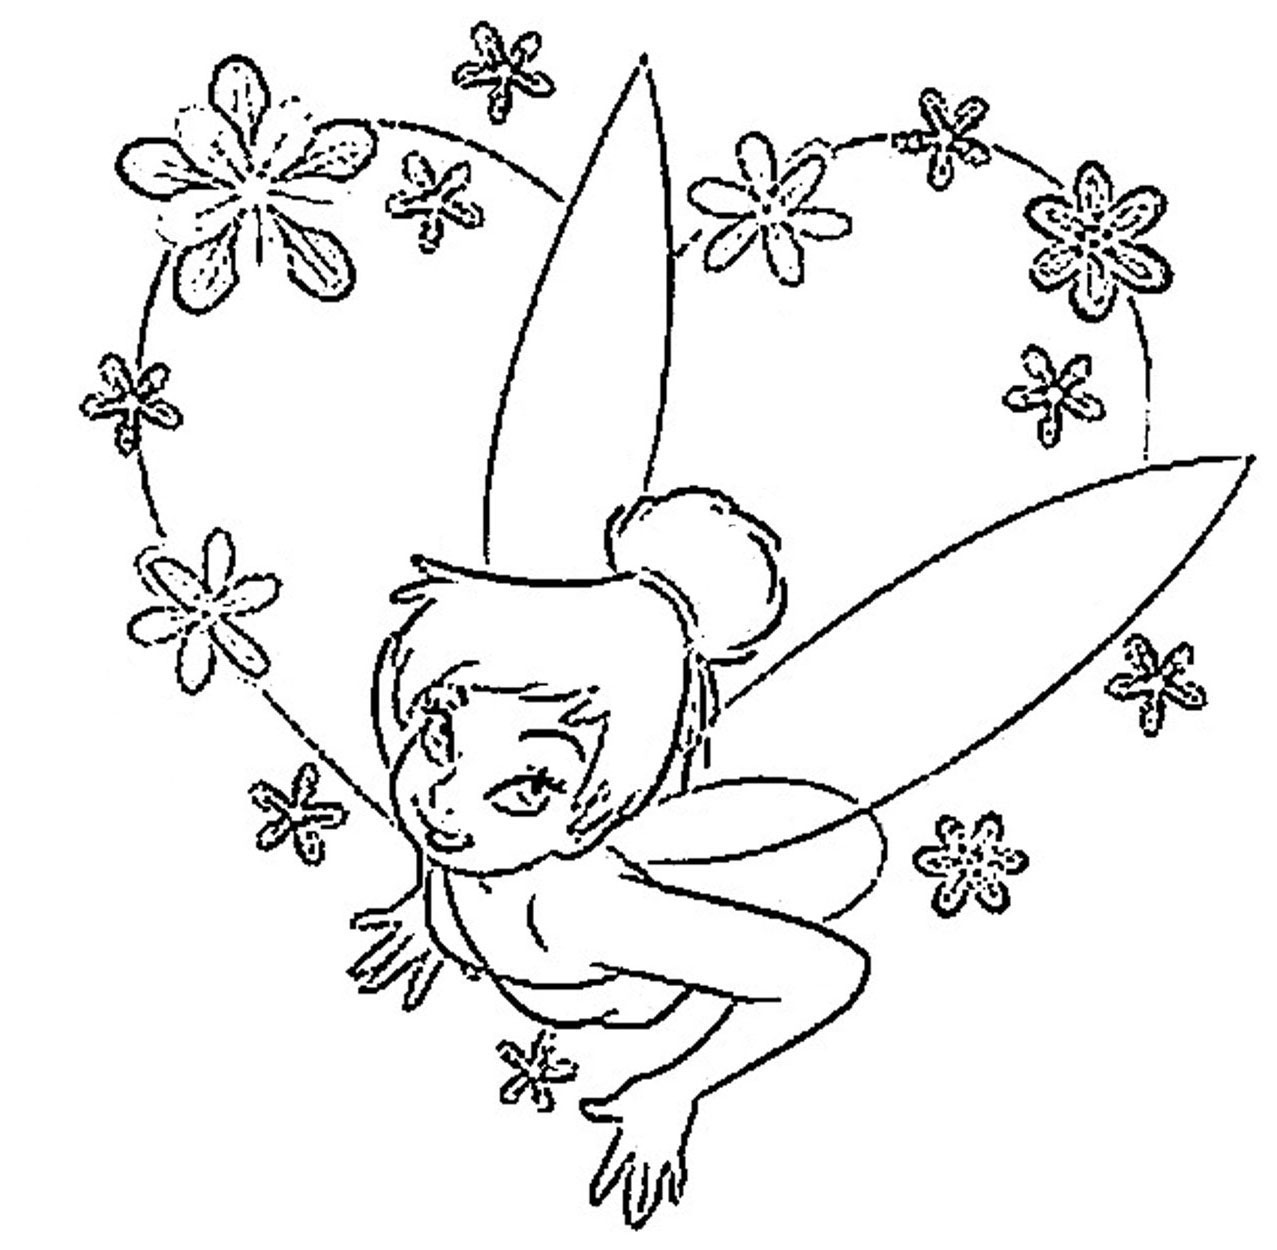 Find thousands of Disney Princess Coloring Pages to print and color Tinkerbell Halloween Coloring Pages